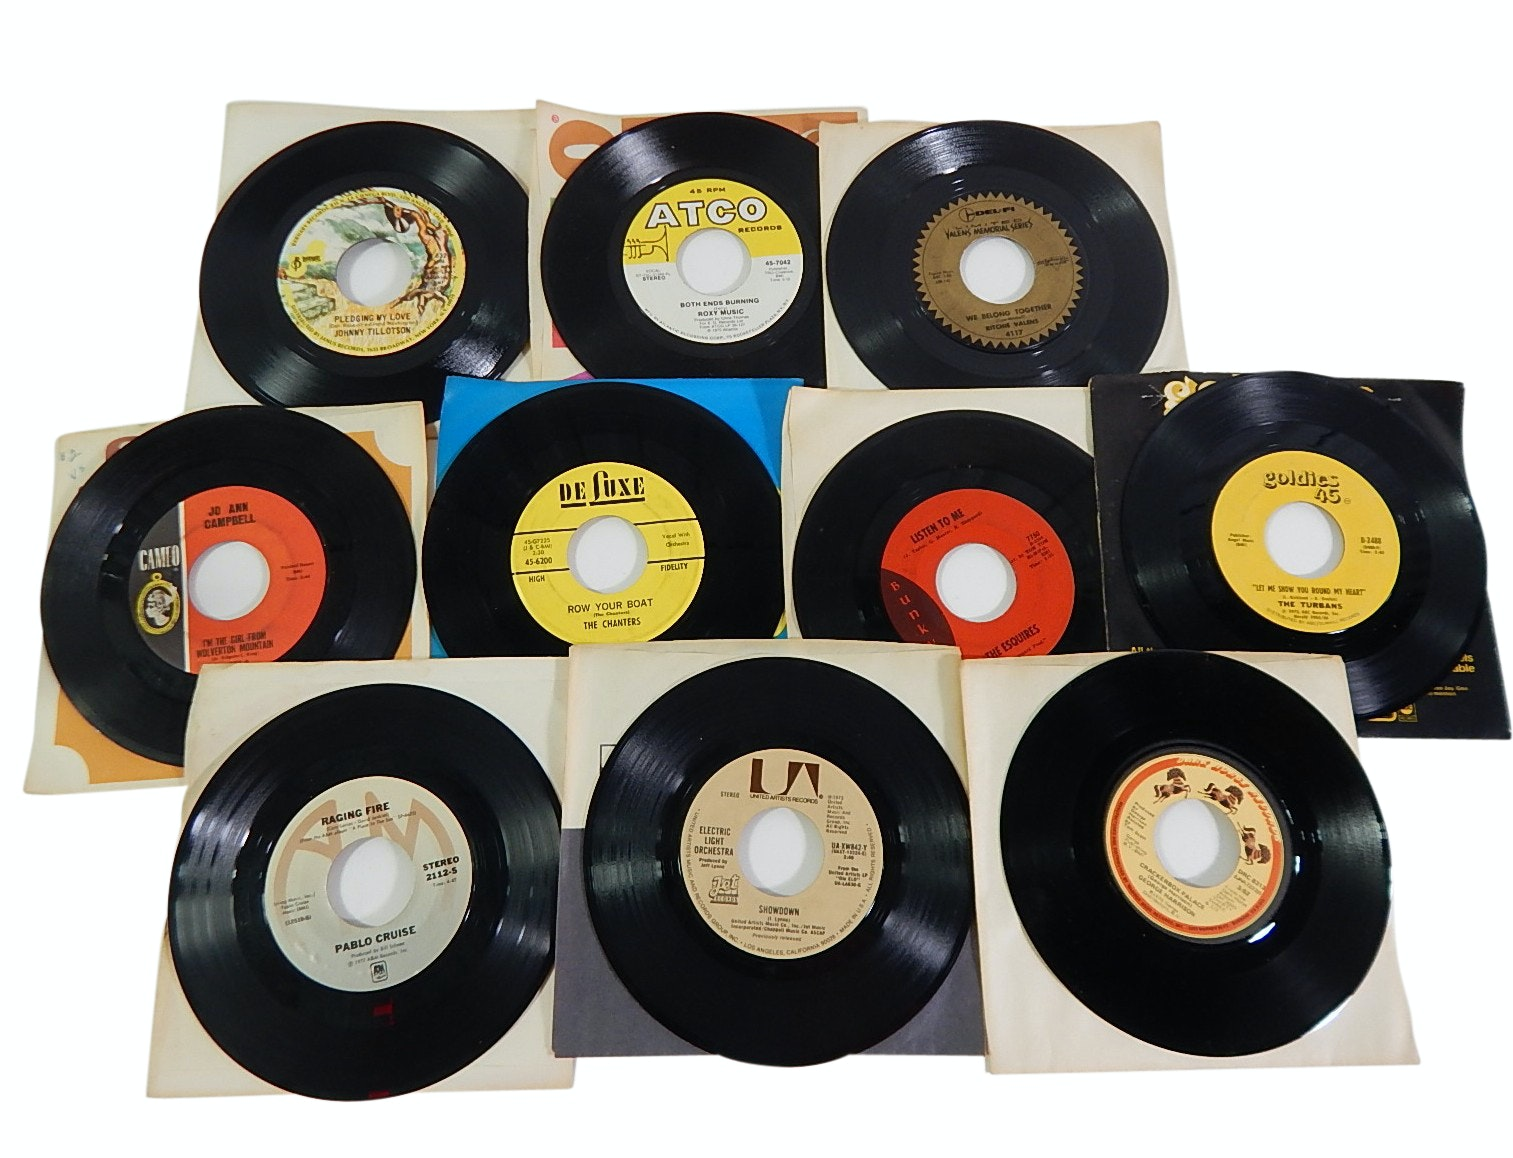 Collection of 1970s 45 RPM Record Albums with Country, Rock, Pop, R&B